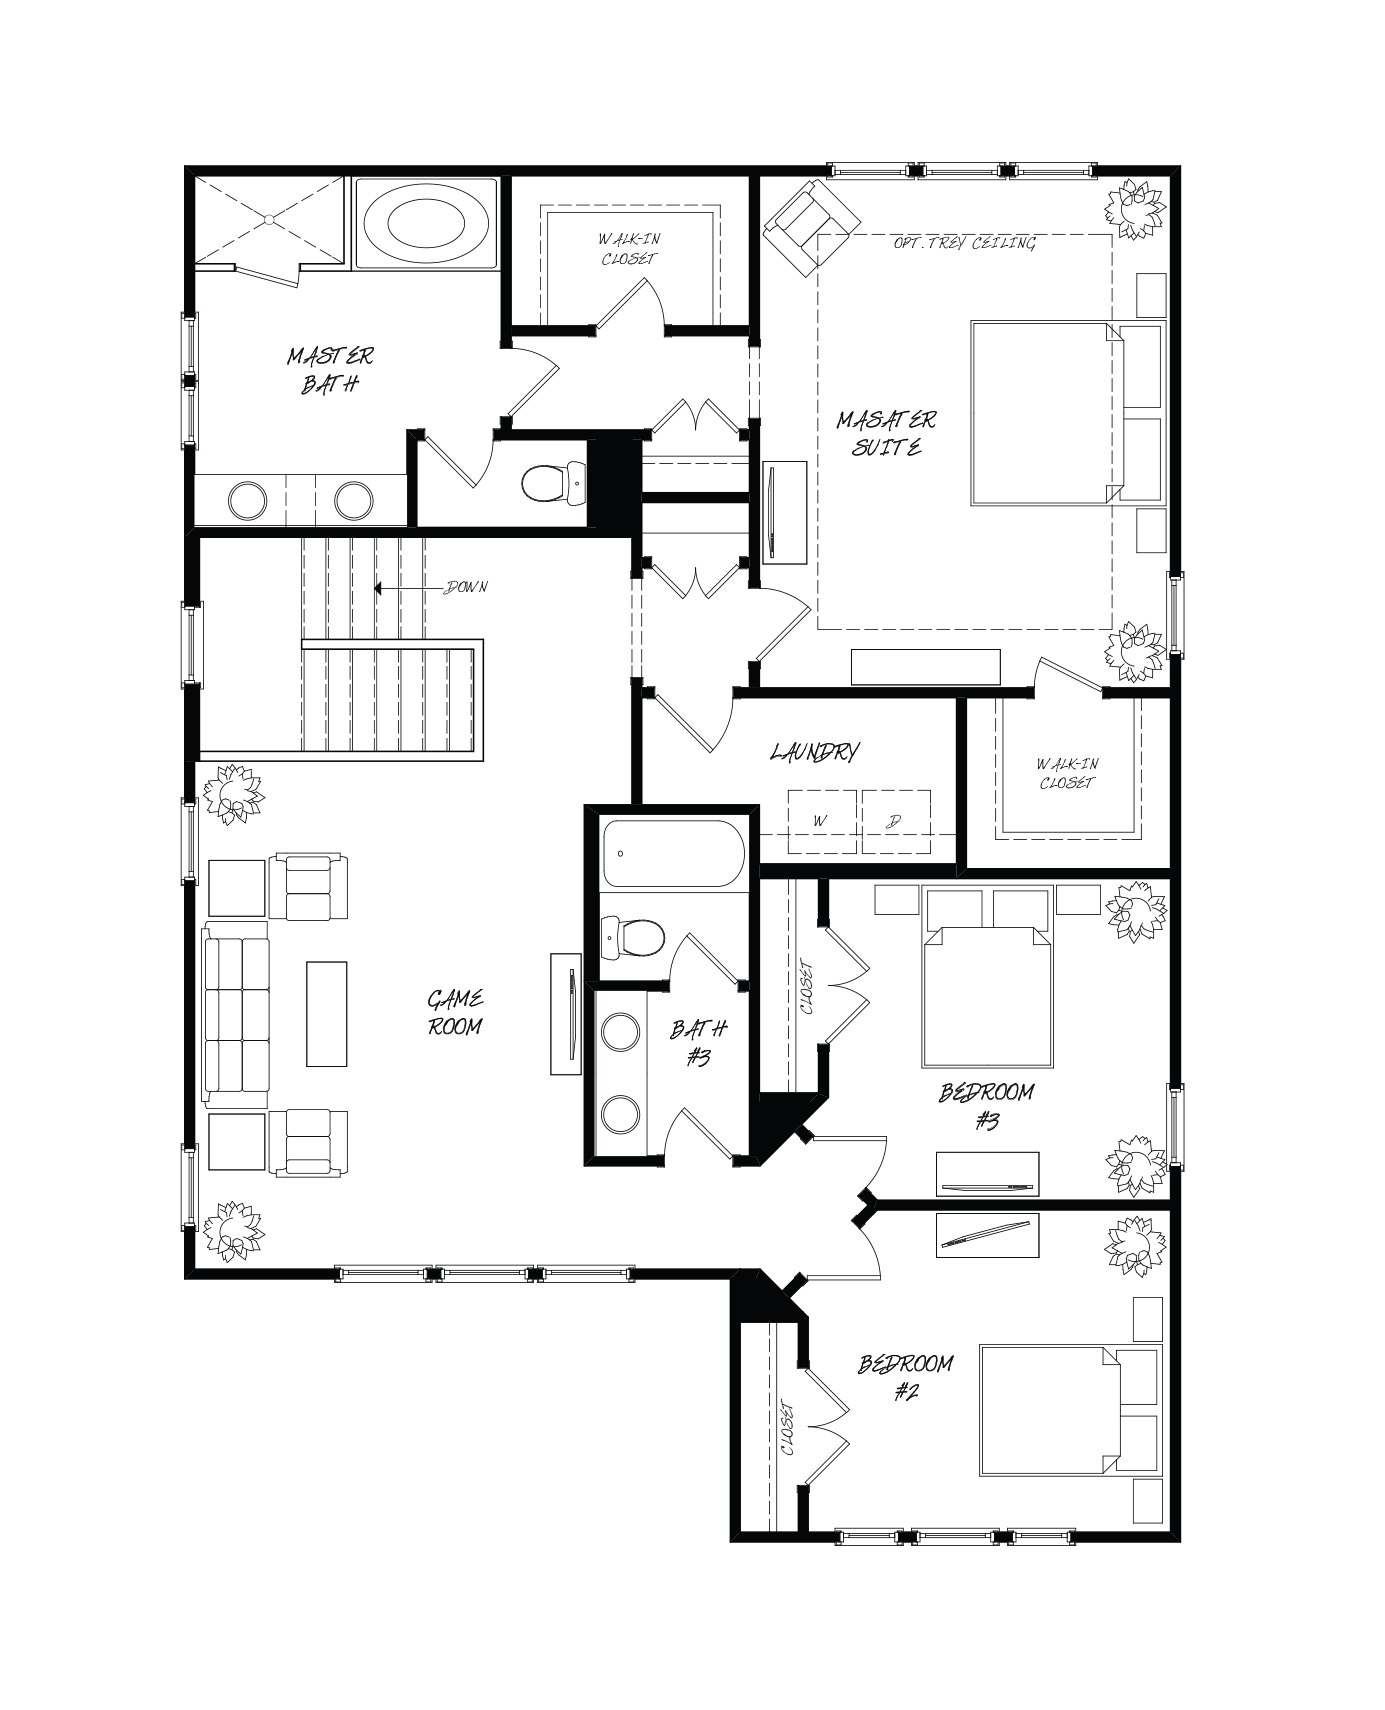 Tea Olive Plan a Sabal Homes Second Floor Plan near Charleston, SC